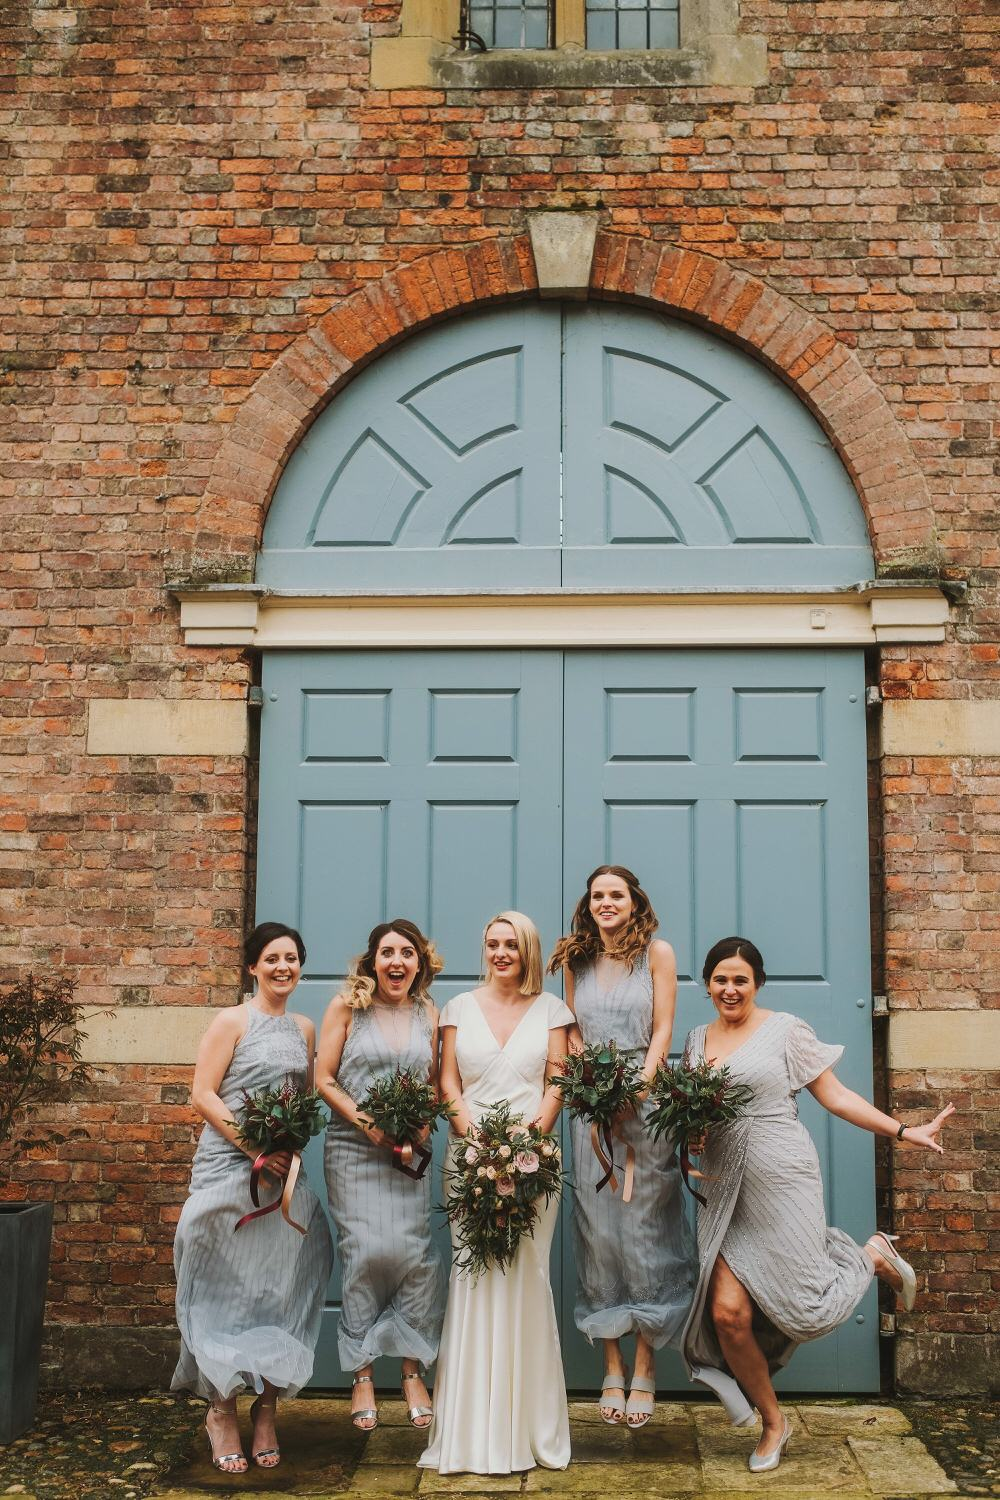 Bridesmaid Bridesmaids Dress Dresses Grey Beaded Dorfold Hall Wedding Kate McCarthy Photography